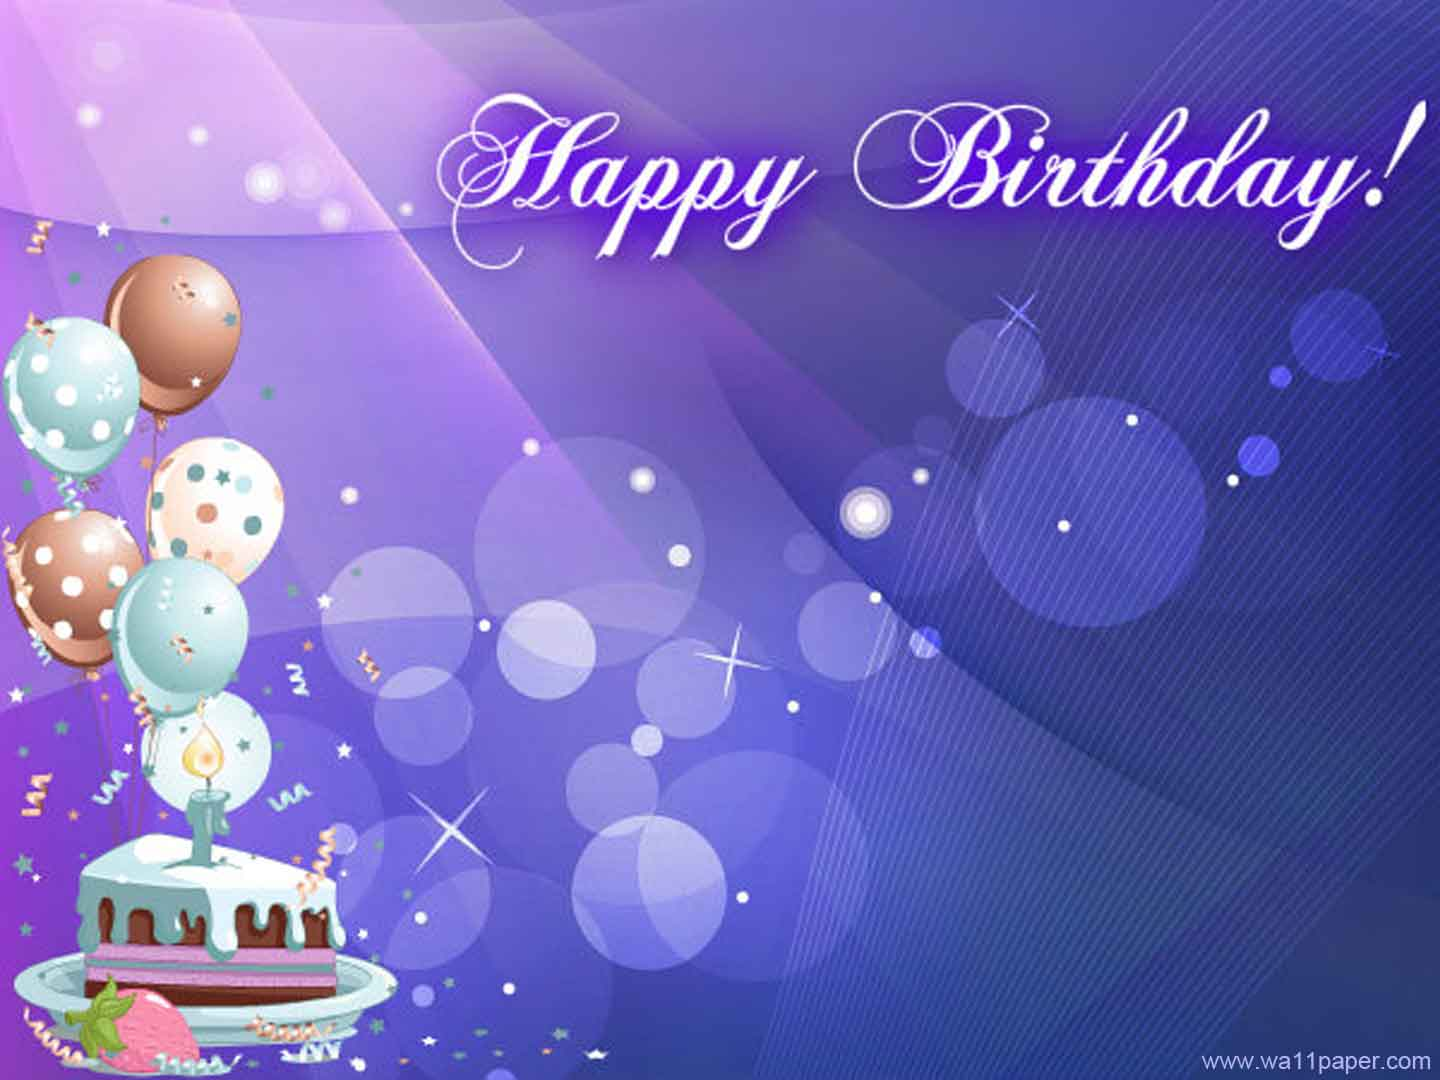 Happy Birthday Backgrounds Image